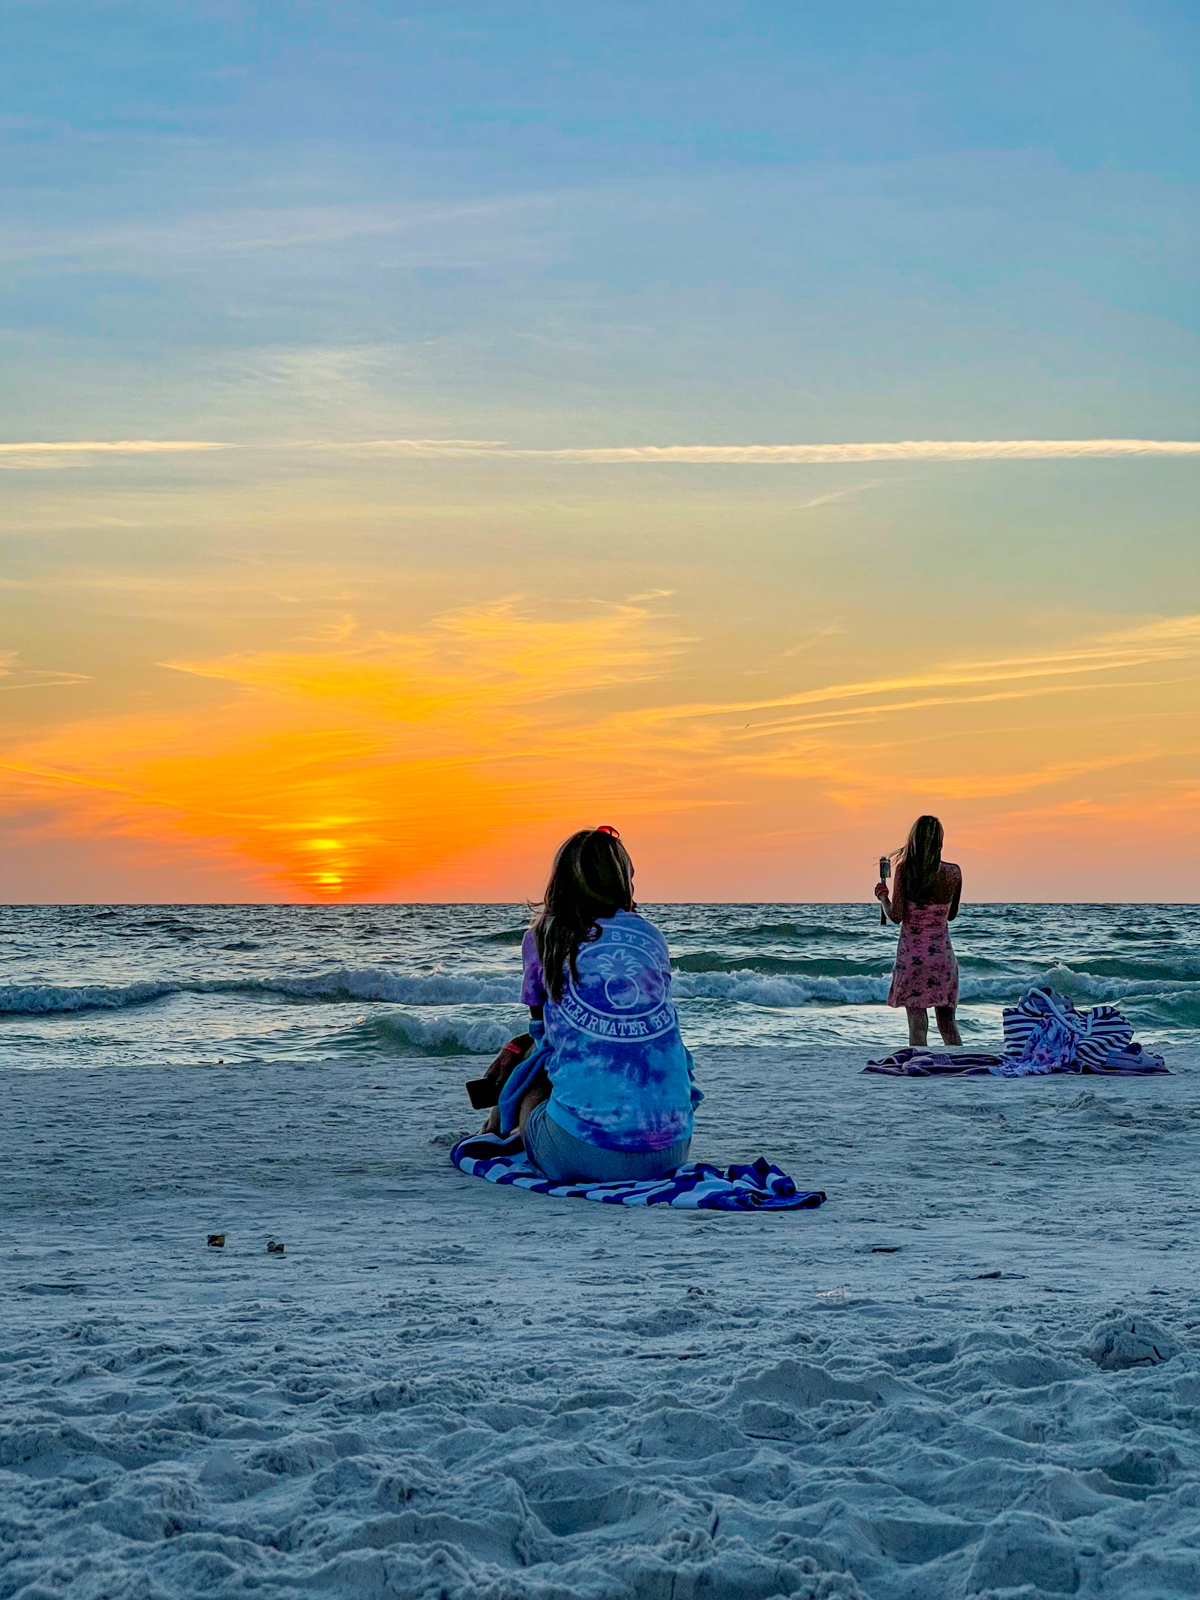 Sunset on Clearwater Beach, FL